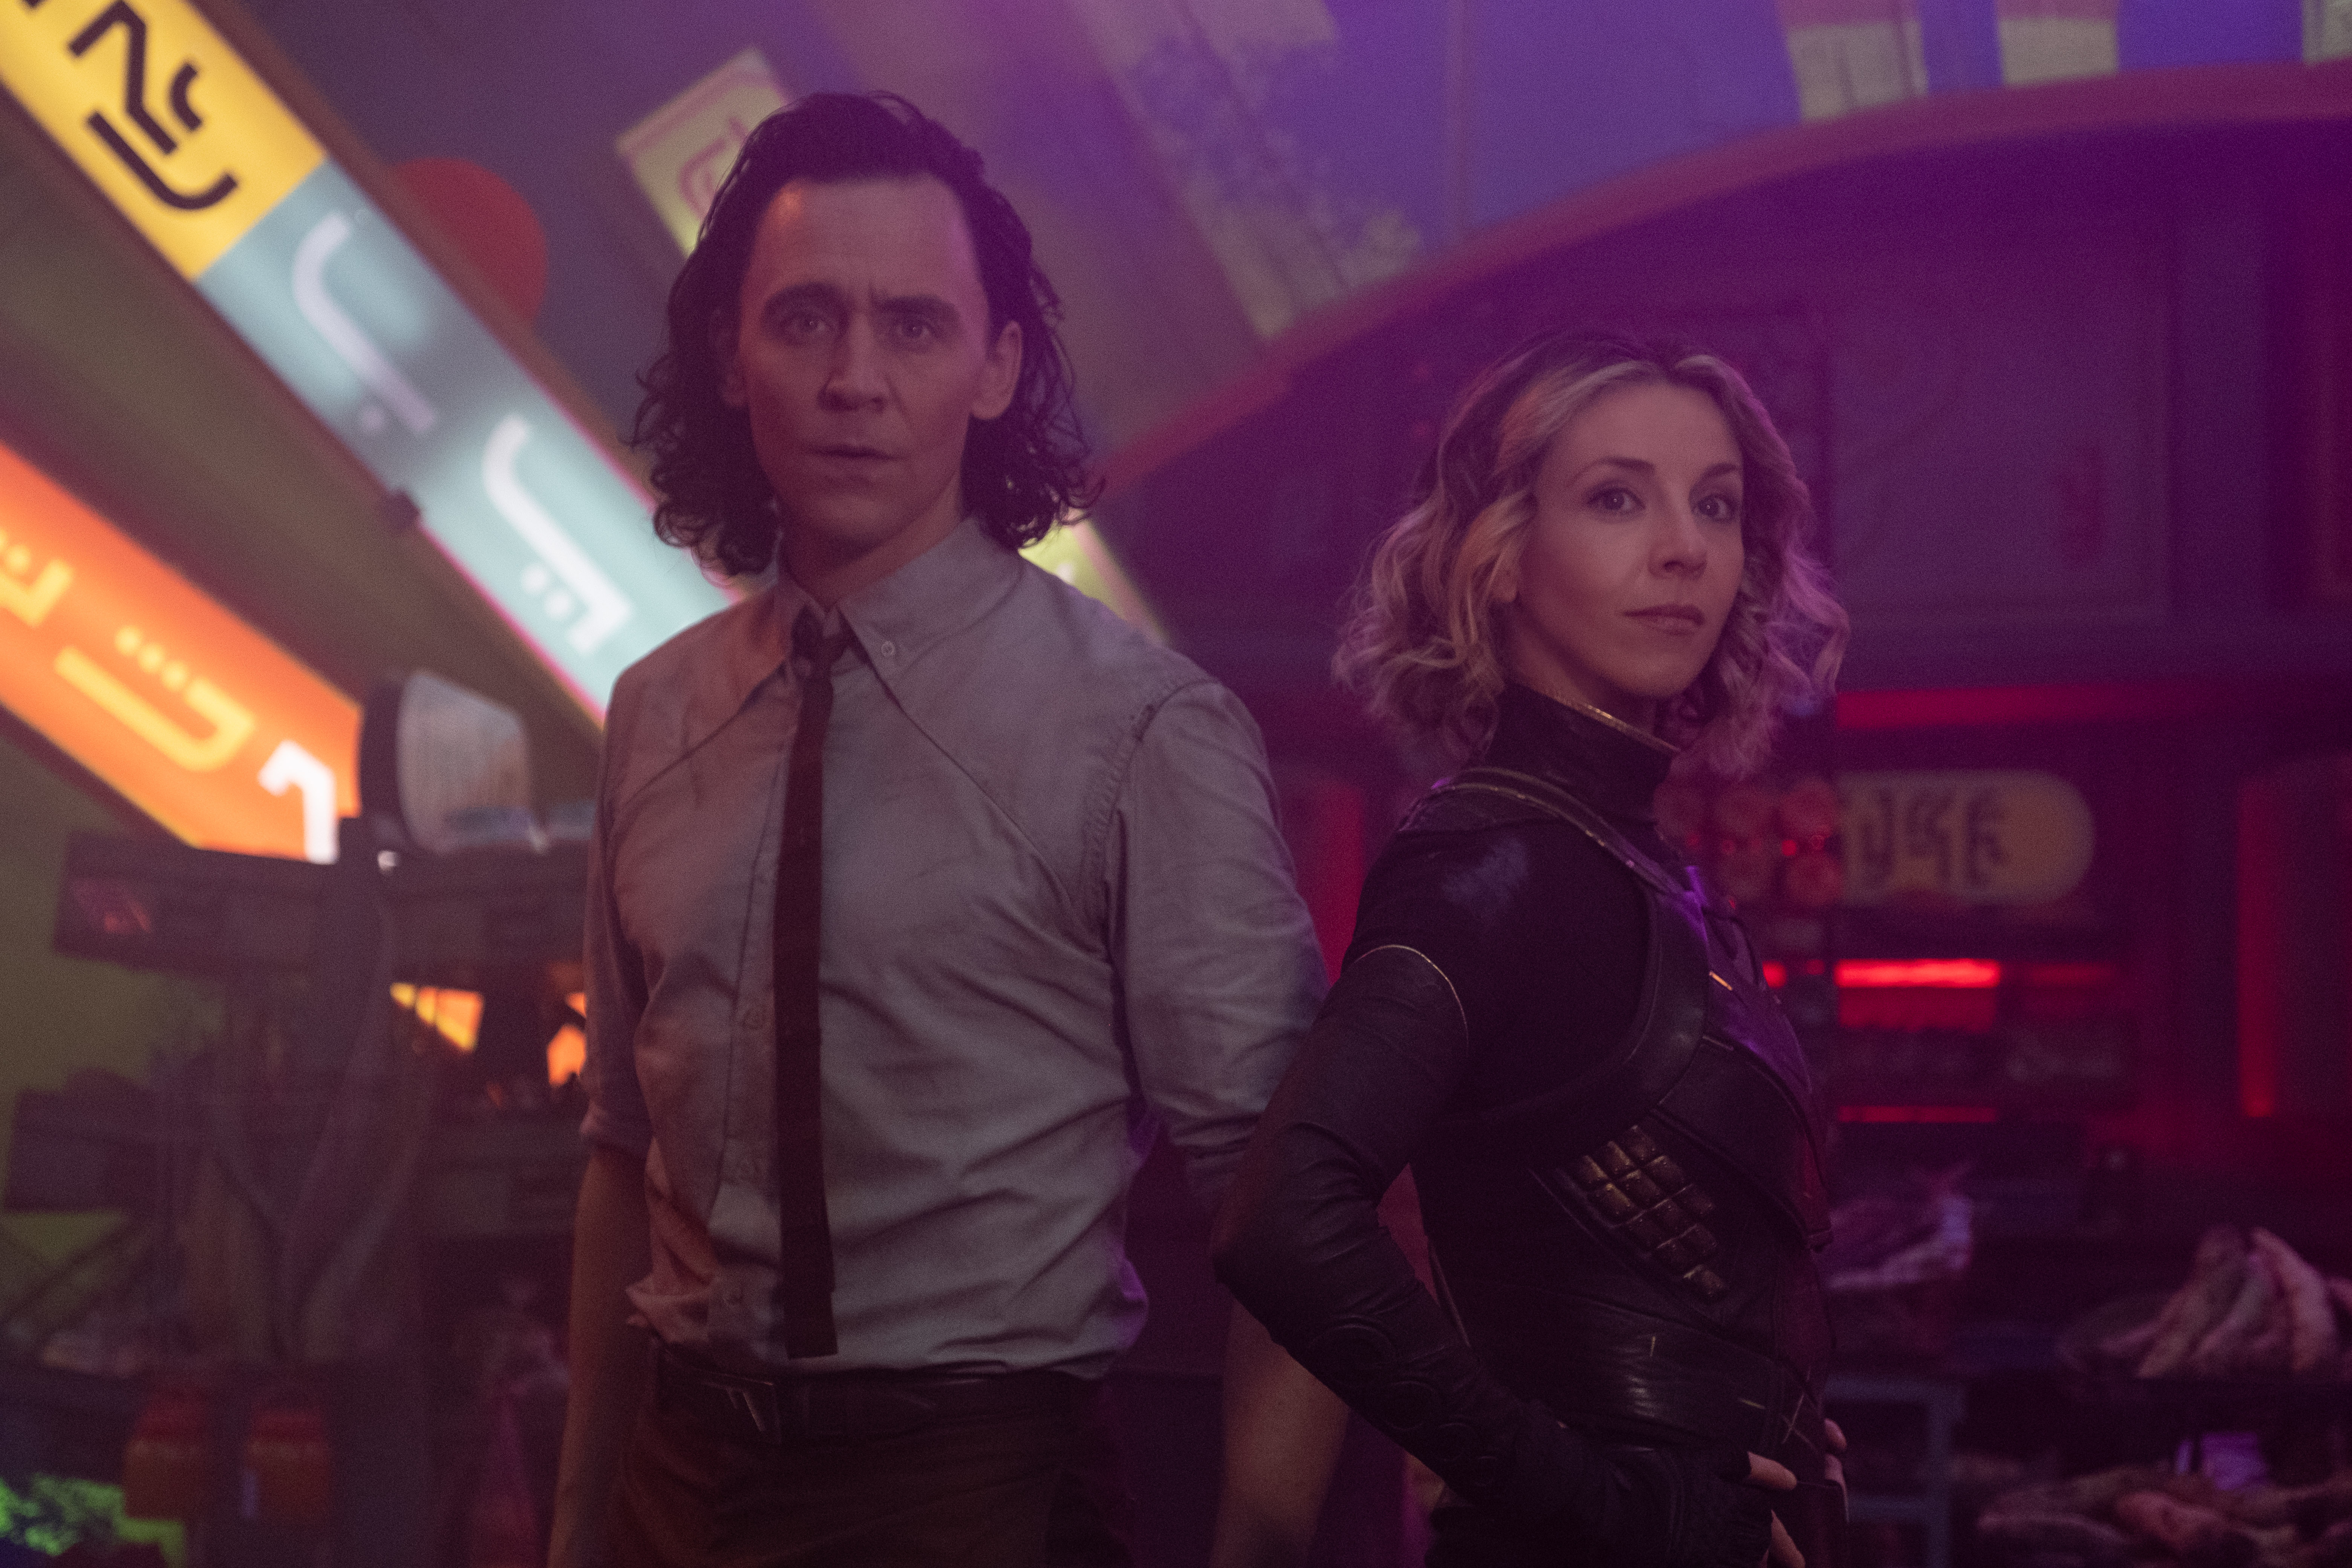 (L-R): Loki (TomHiddleston) and Sophia Di Martino in Marvel Studios' LOKI, exclusively on Disney+. Photo by Chuck Zlotnick. ©Marvel Studios 2021. All Rights Reserved.